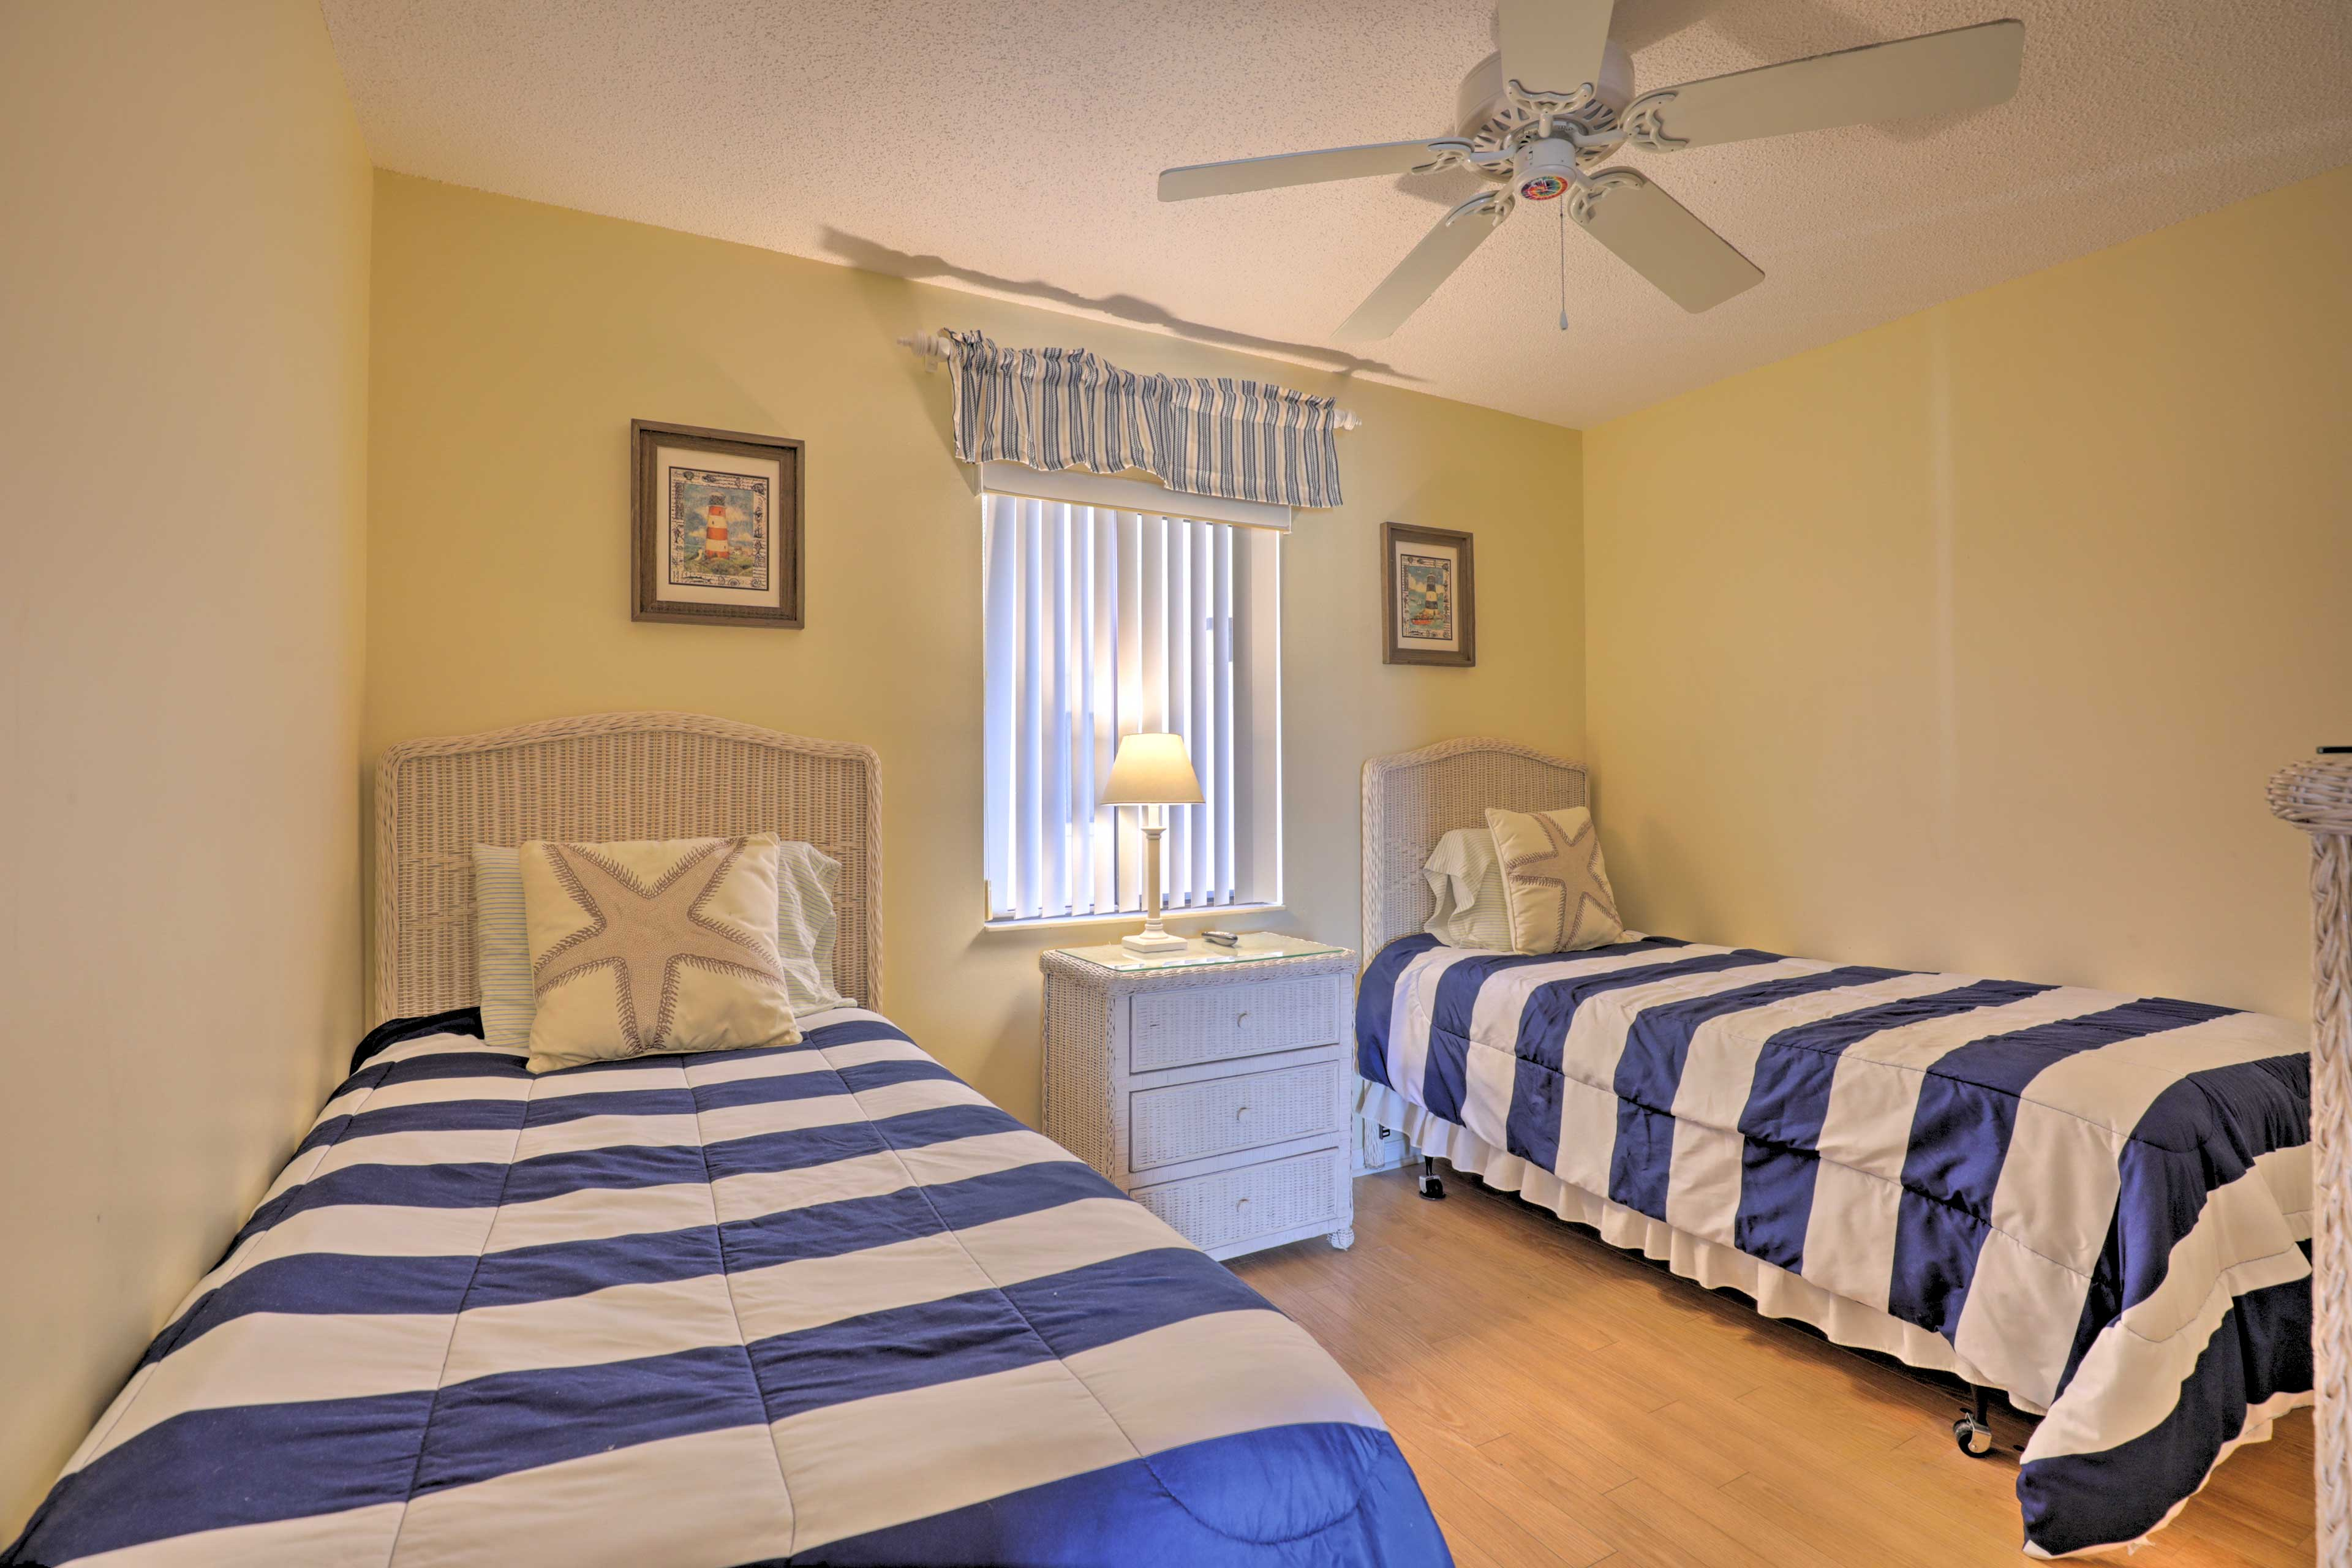 Tuck the kids into the 2 twin beds in the second bedroom.